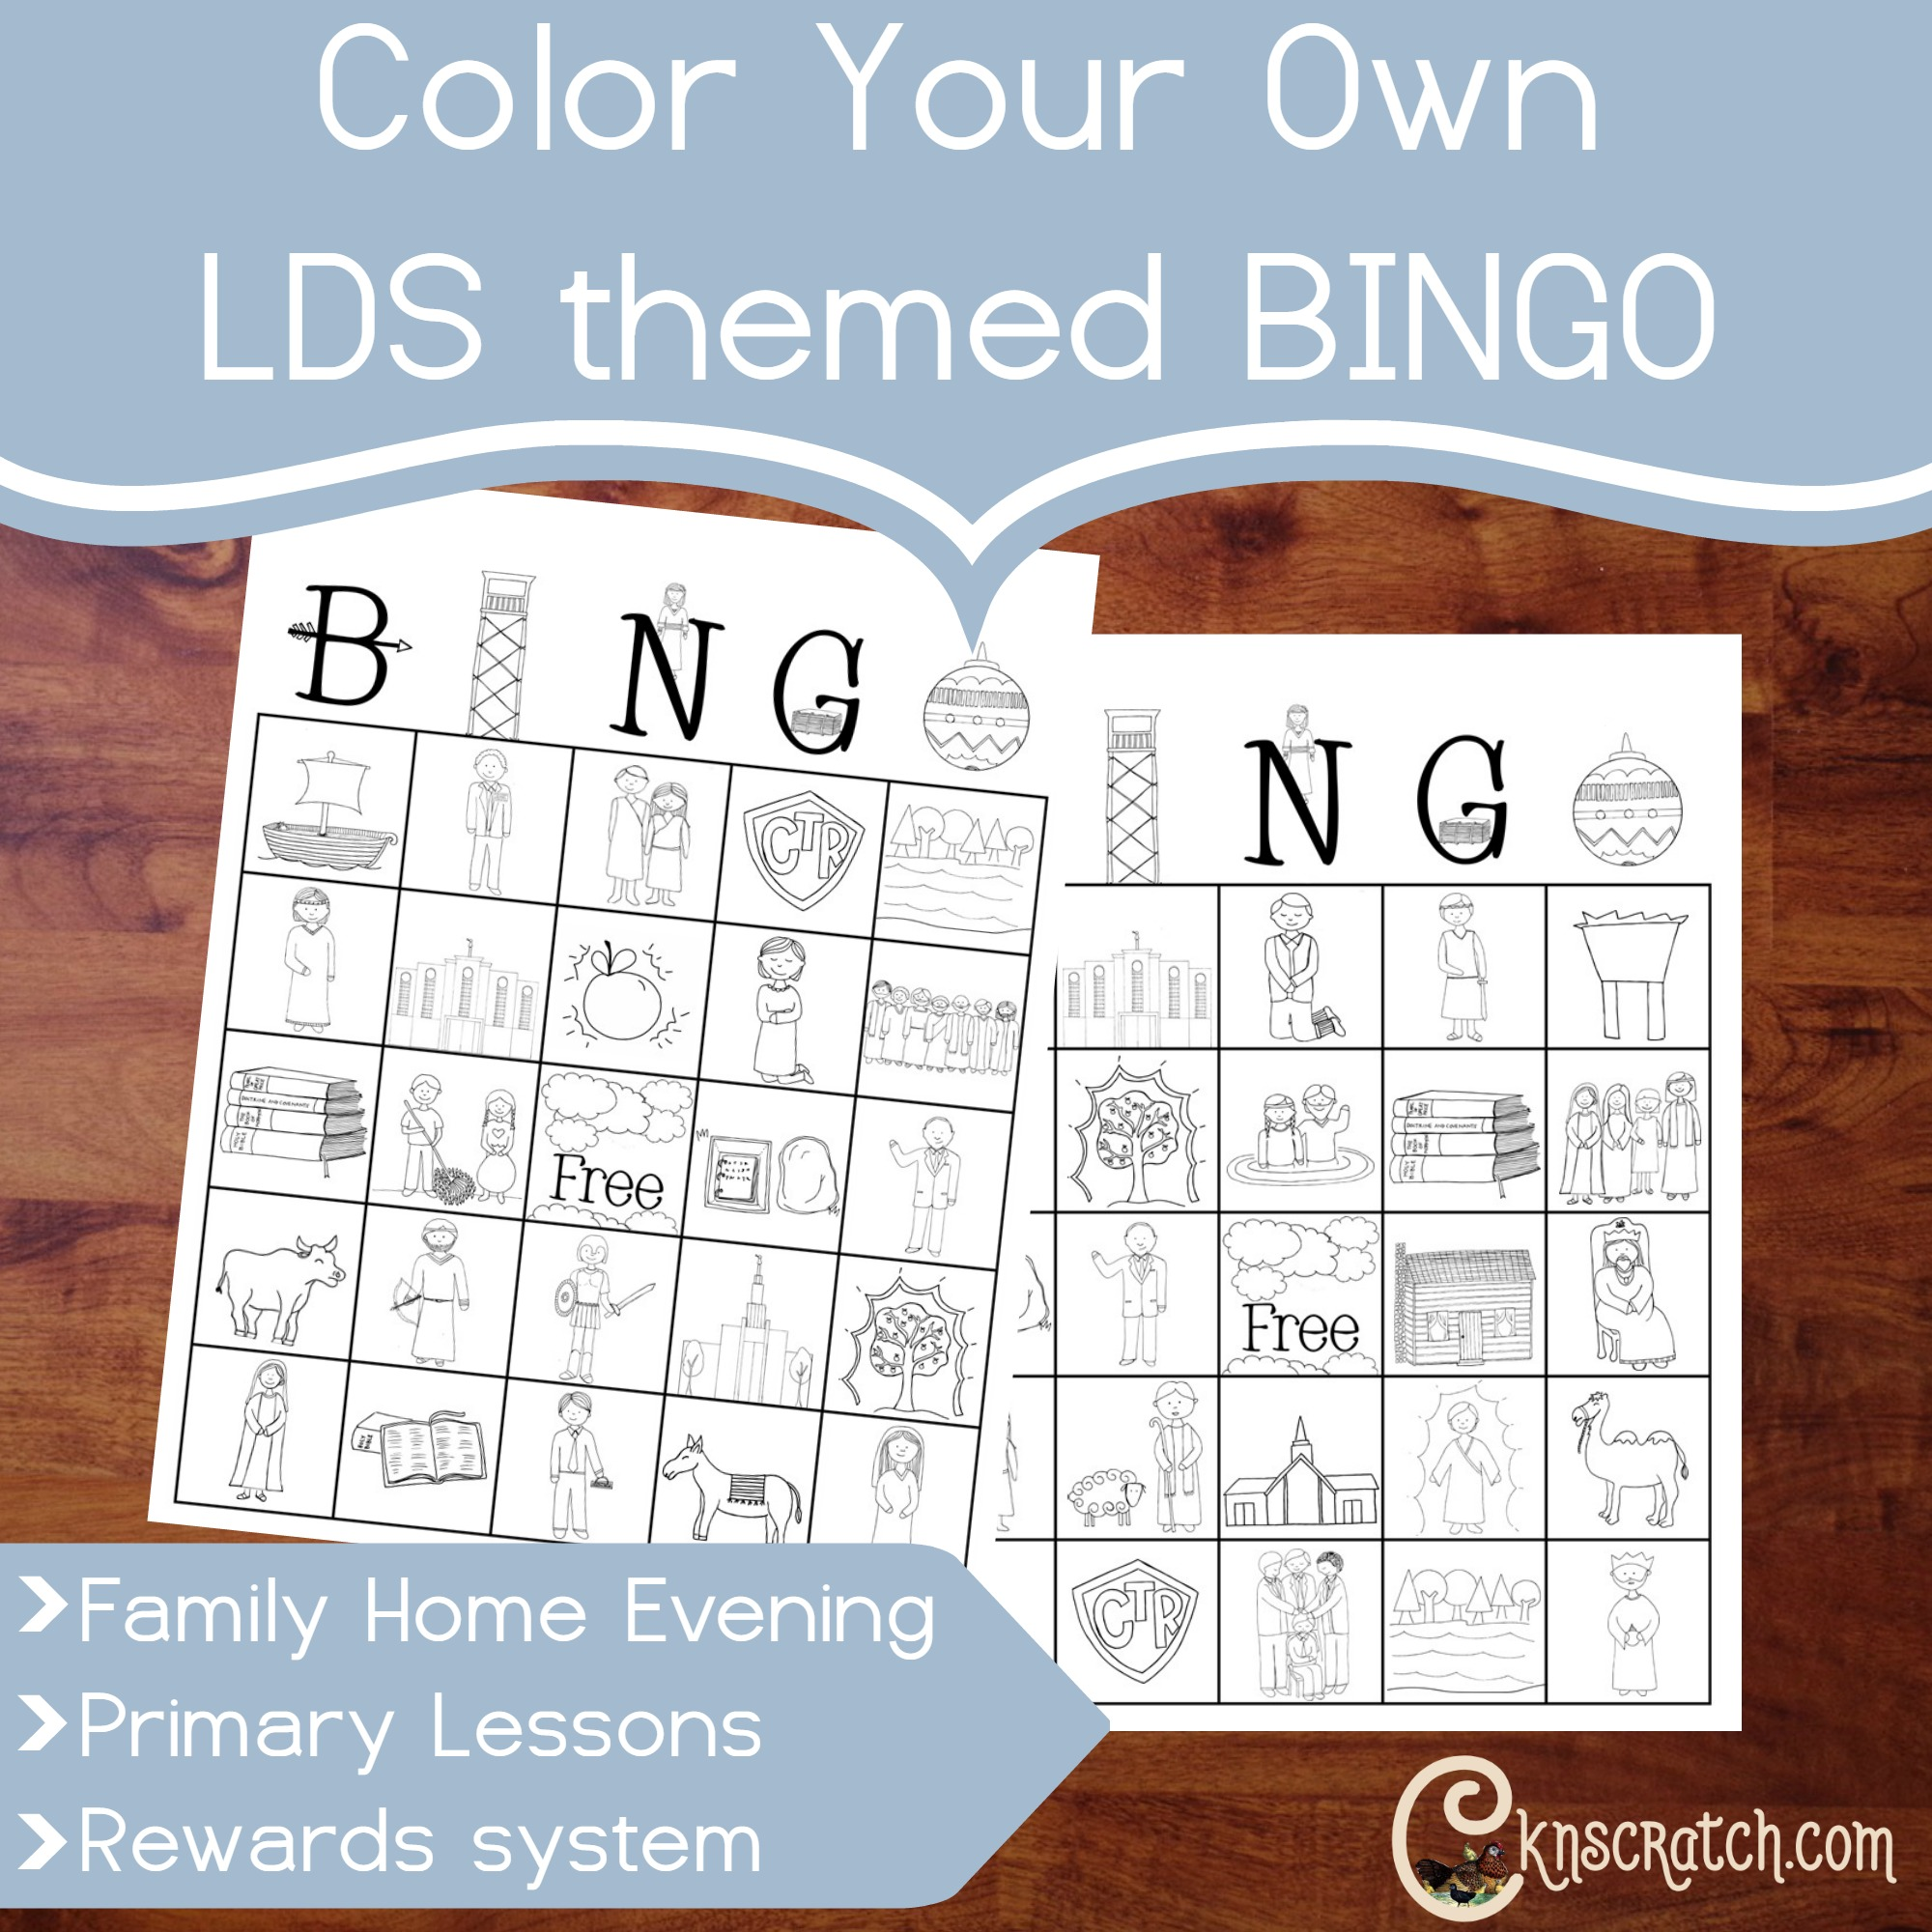 Color Your Own LDS Themed Bingo